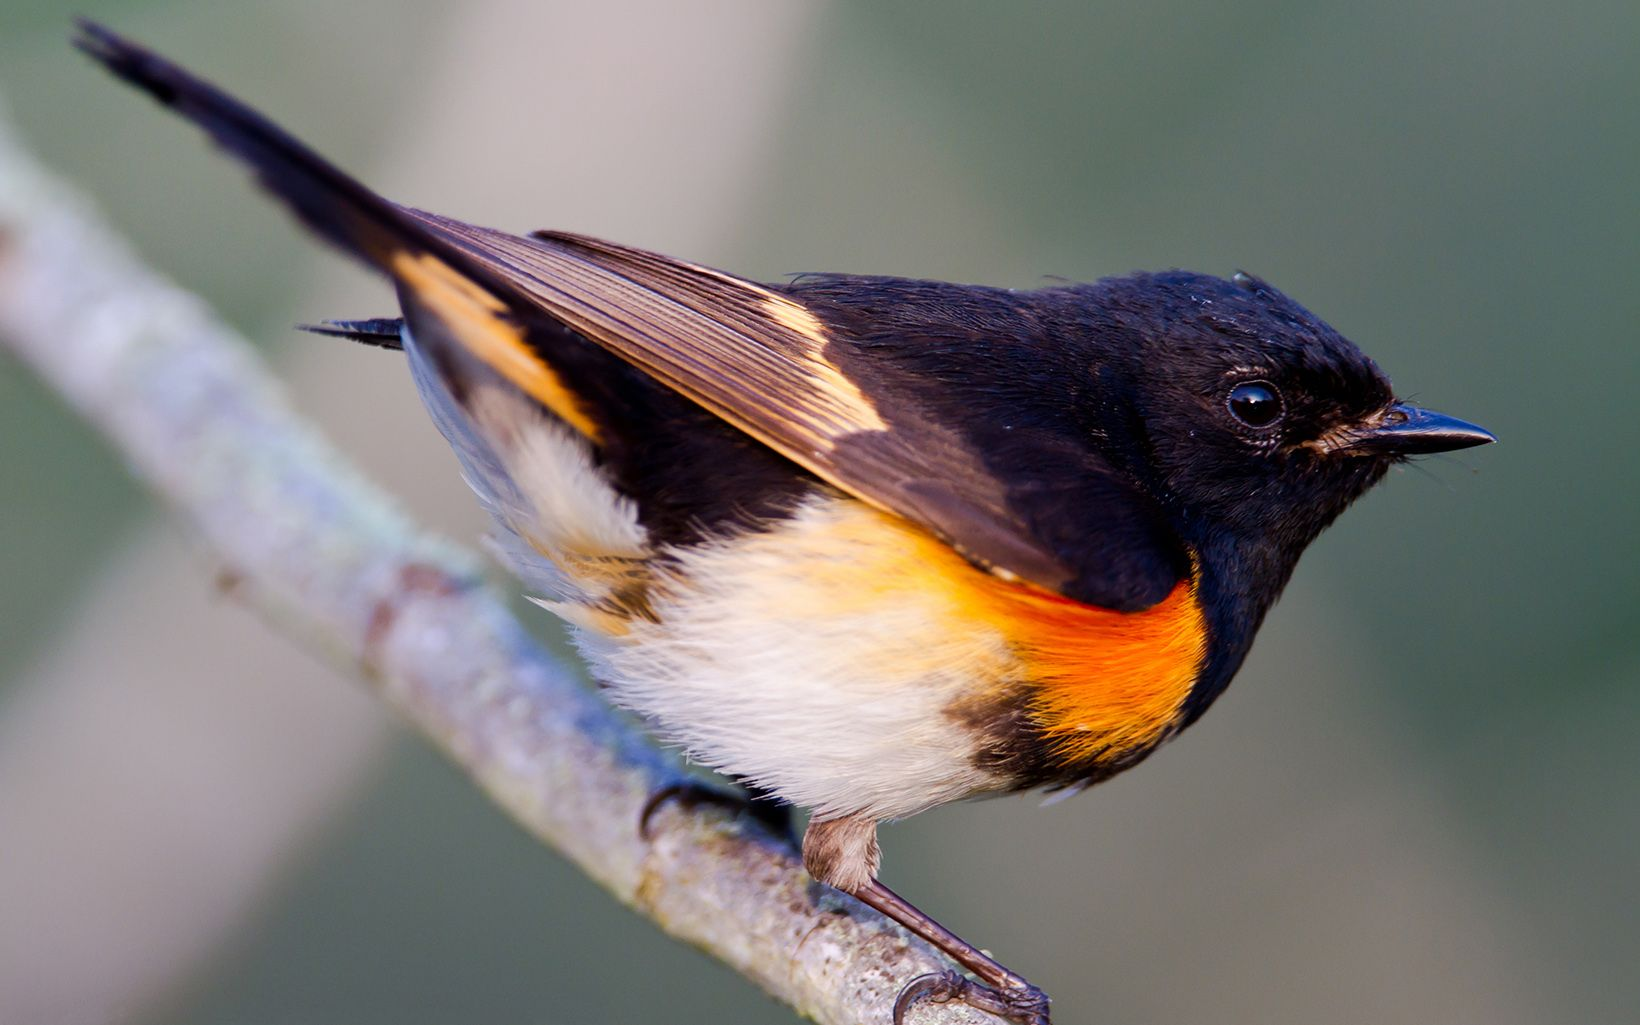 A small bird has a black head and a white belly.